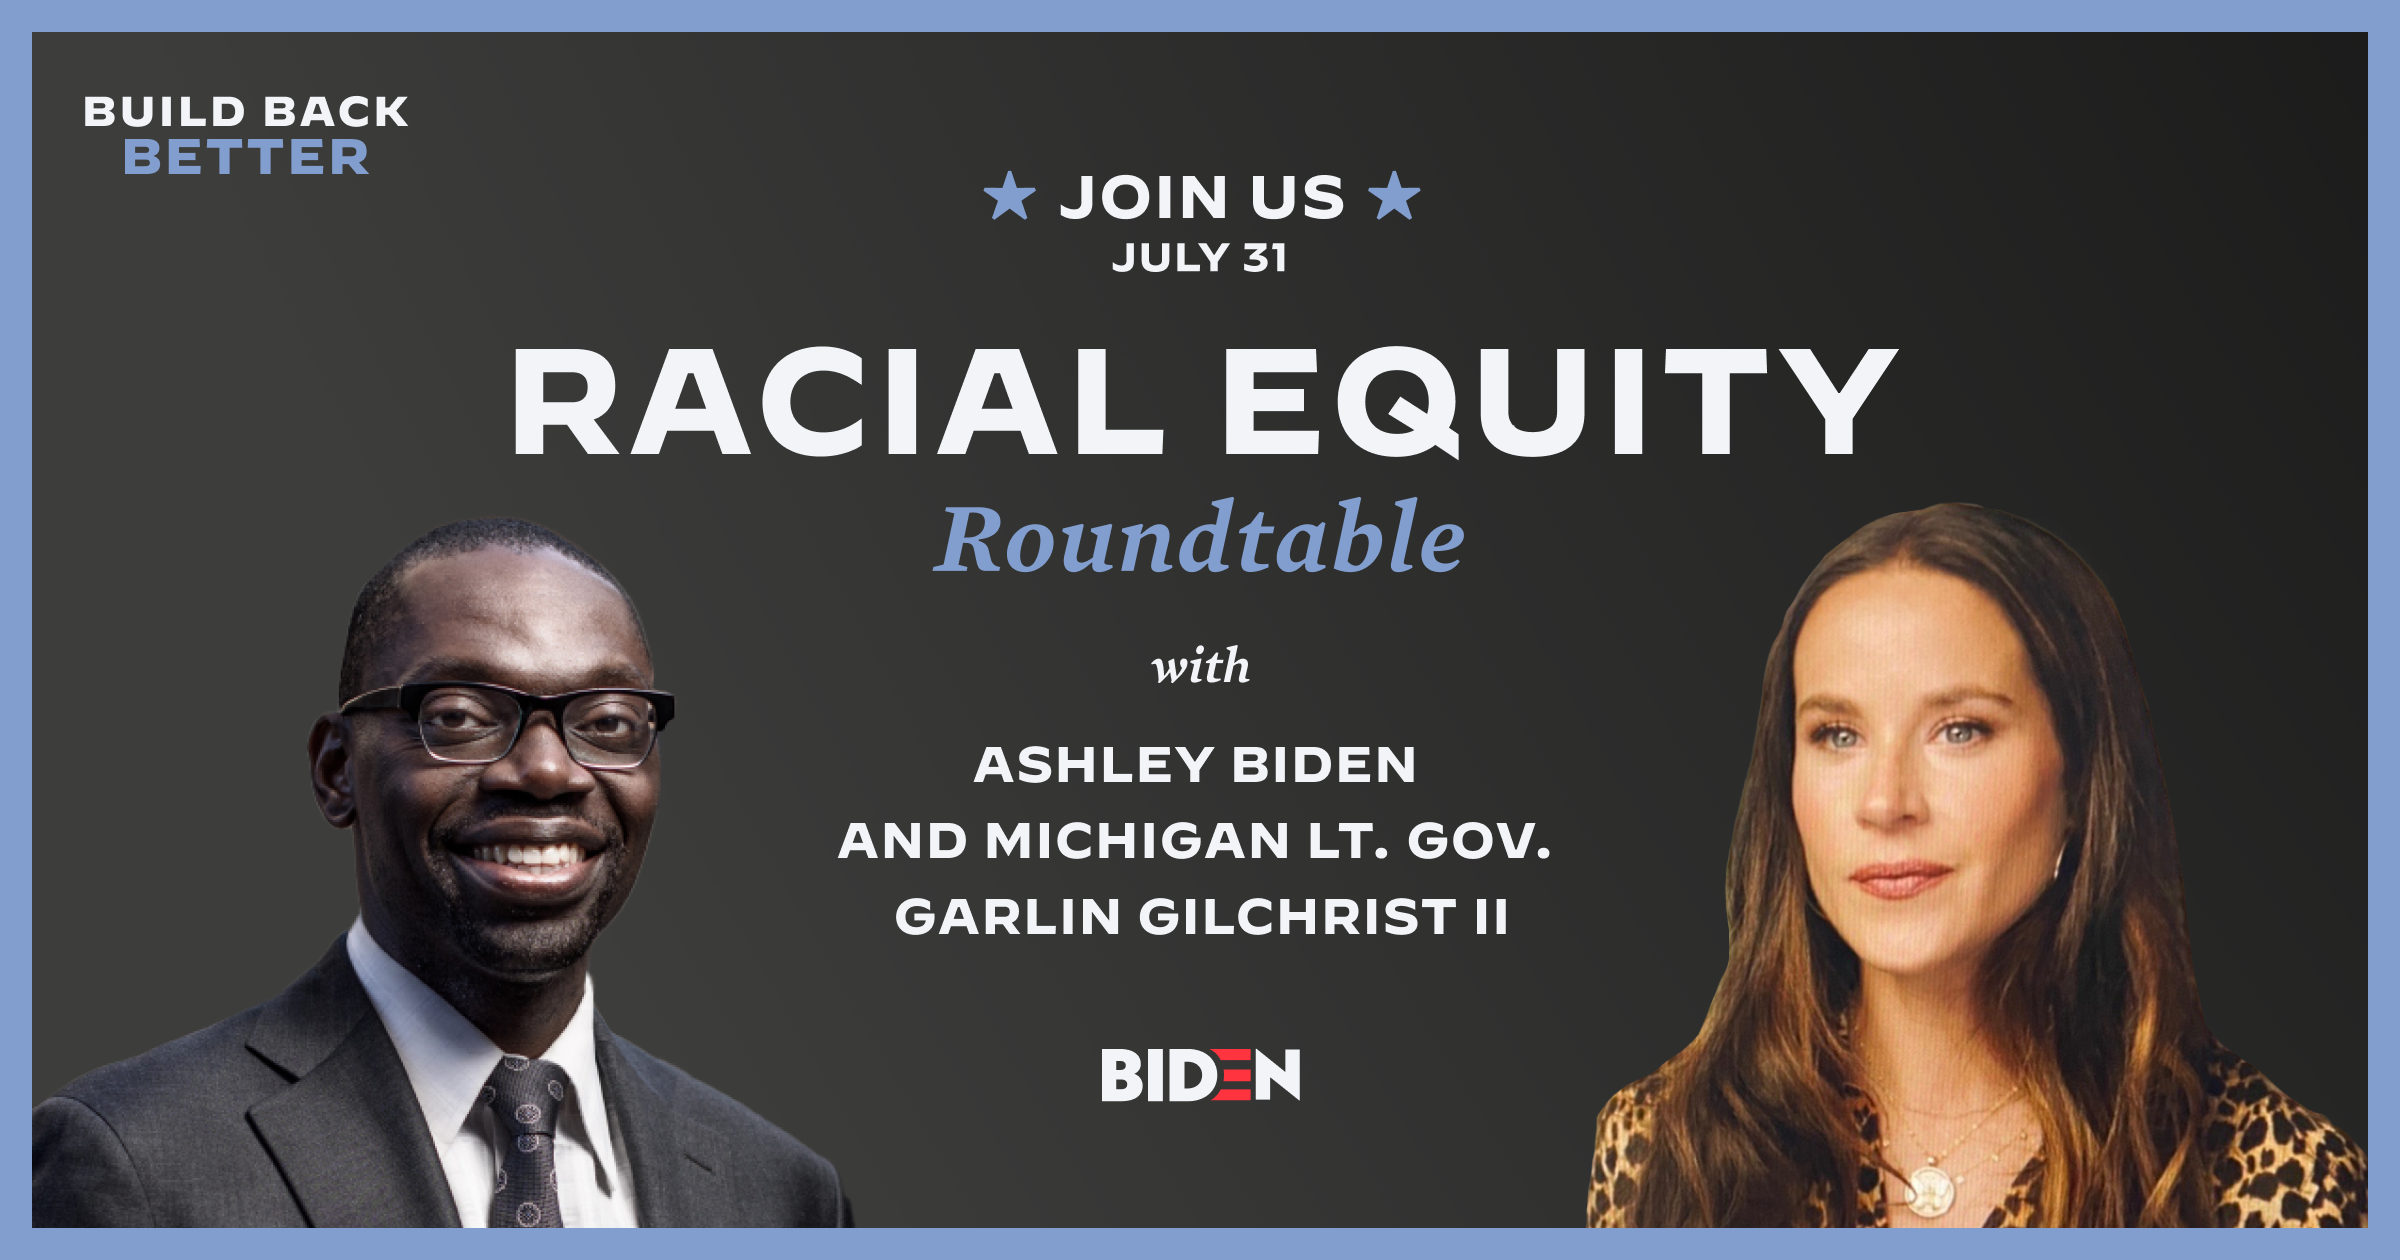 Racial Equity Roundtable With Ashley Biden And Michigan Lt Gov Garlin Gilchrist Ii Joe Biden For President